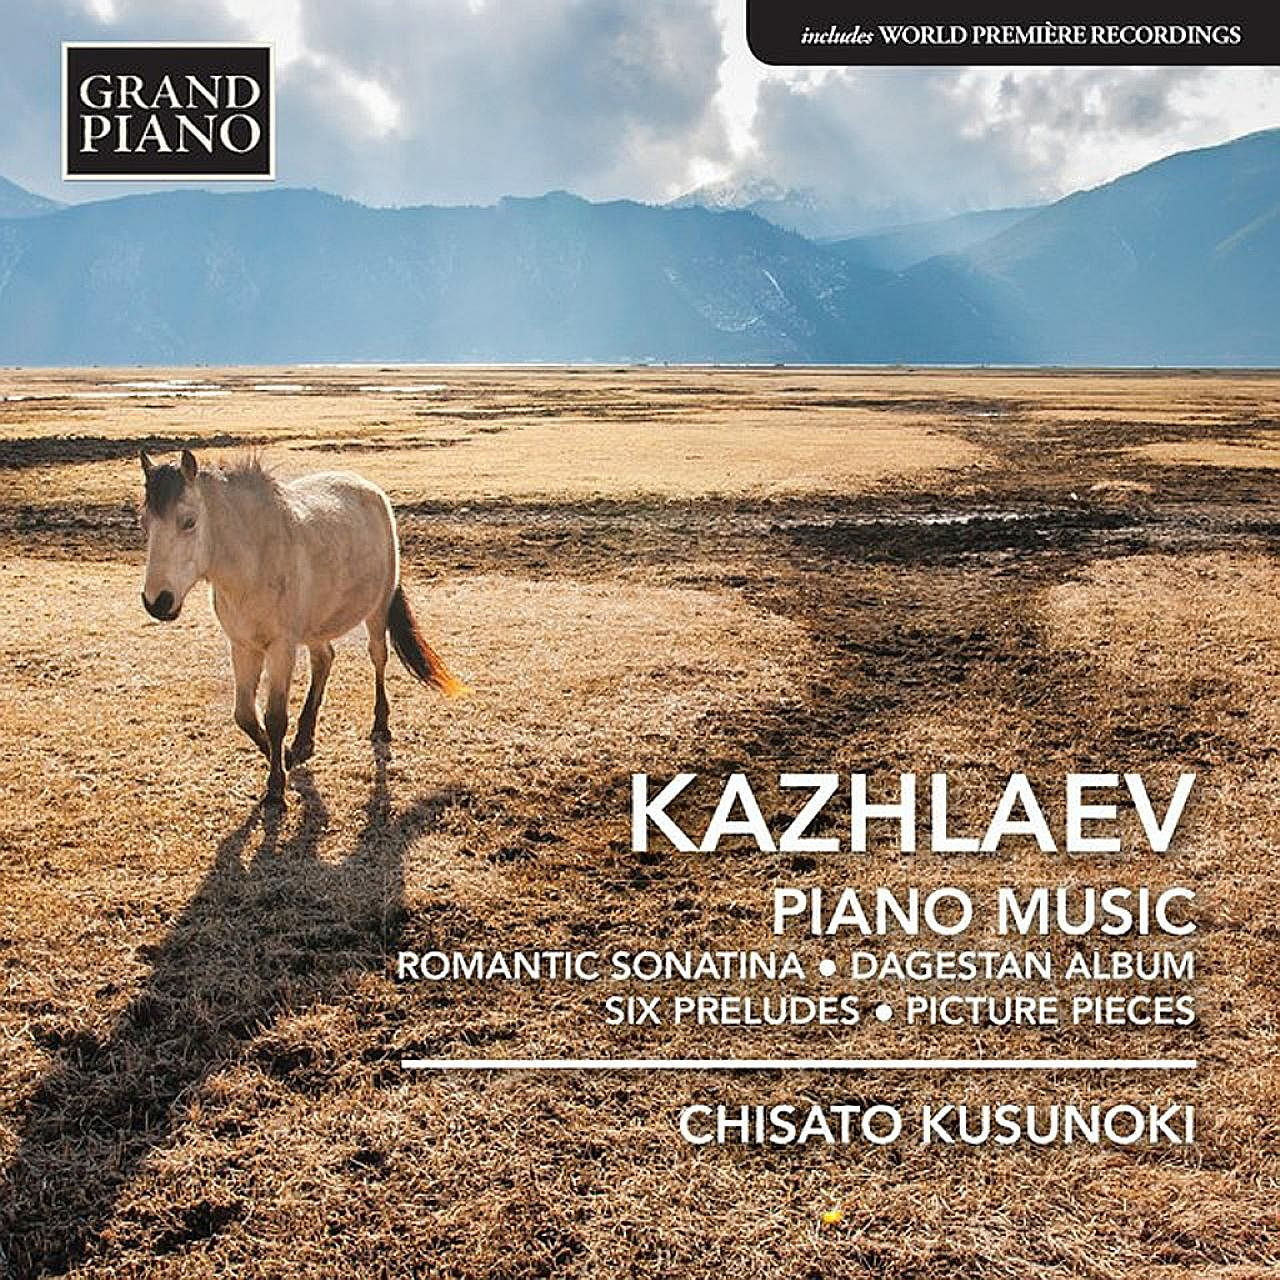 His Preludes 1956 And 1961 Are Closer In Style To Rachmaninov Medtner The Nationalist Khachaturian Rather Than Dissonance Of Prokofiev Or